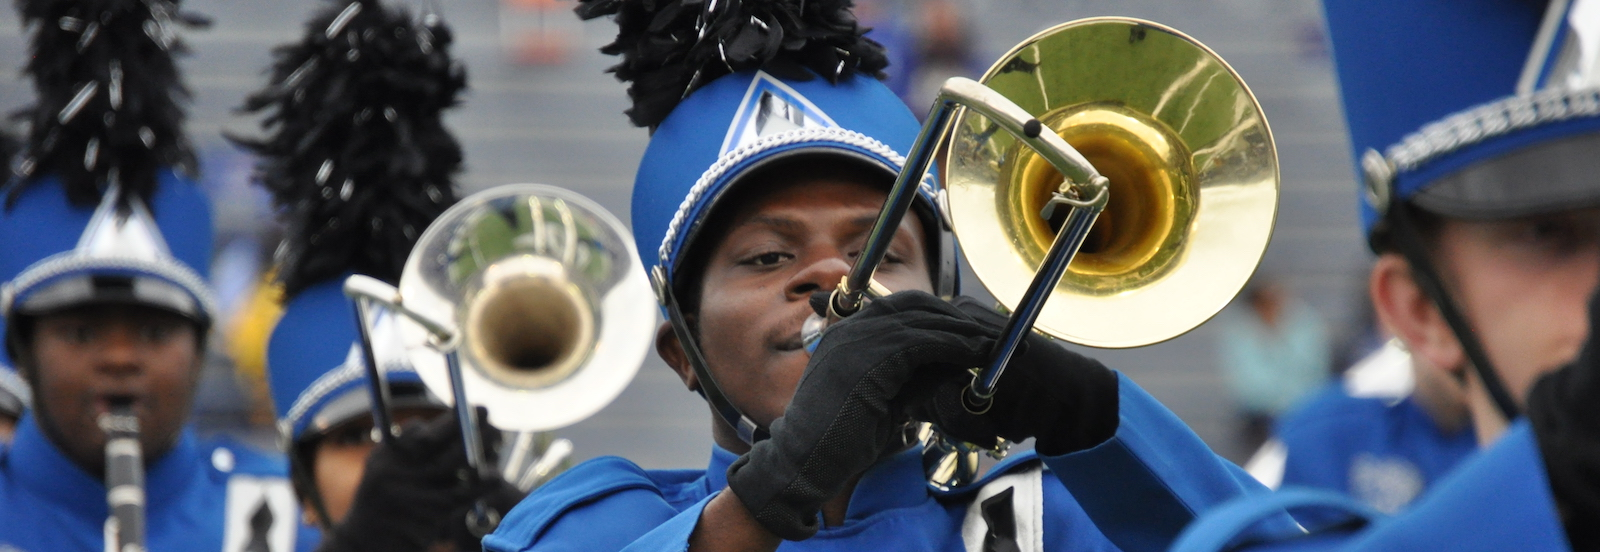 Members of the Mighty Sound of the South in bright blue marching uniforms playing trombone.